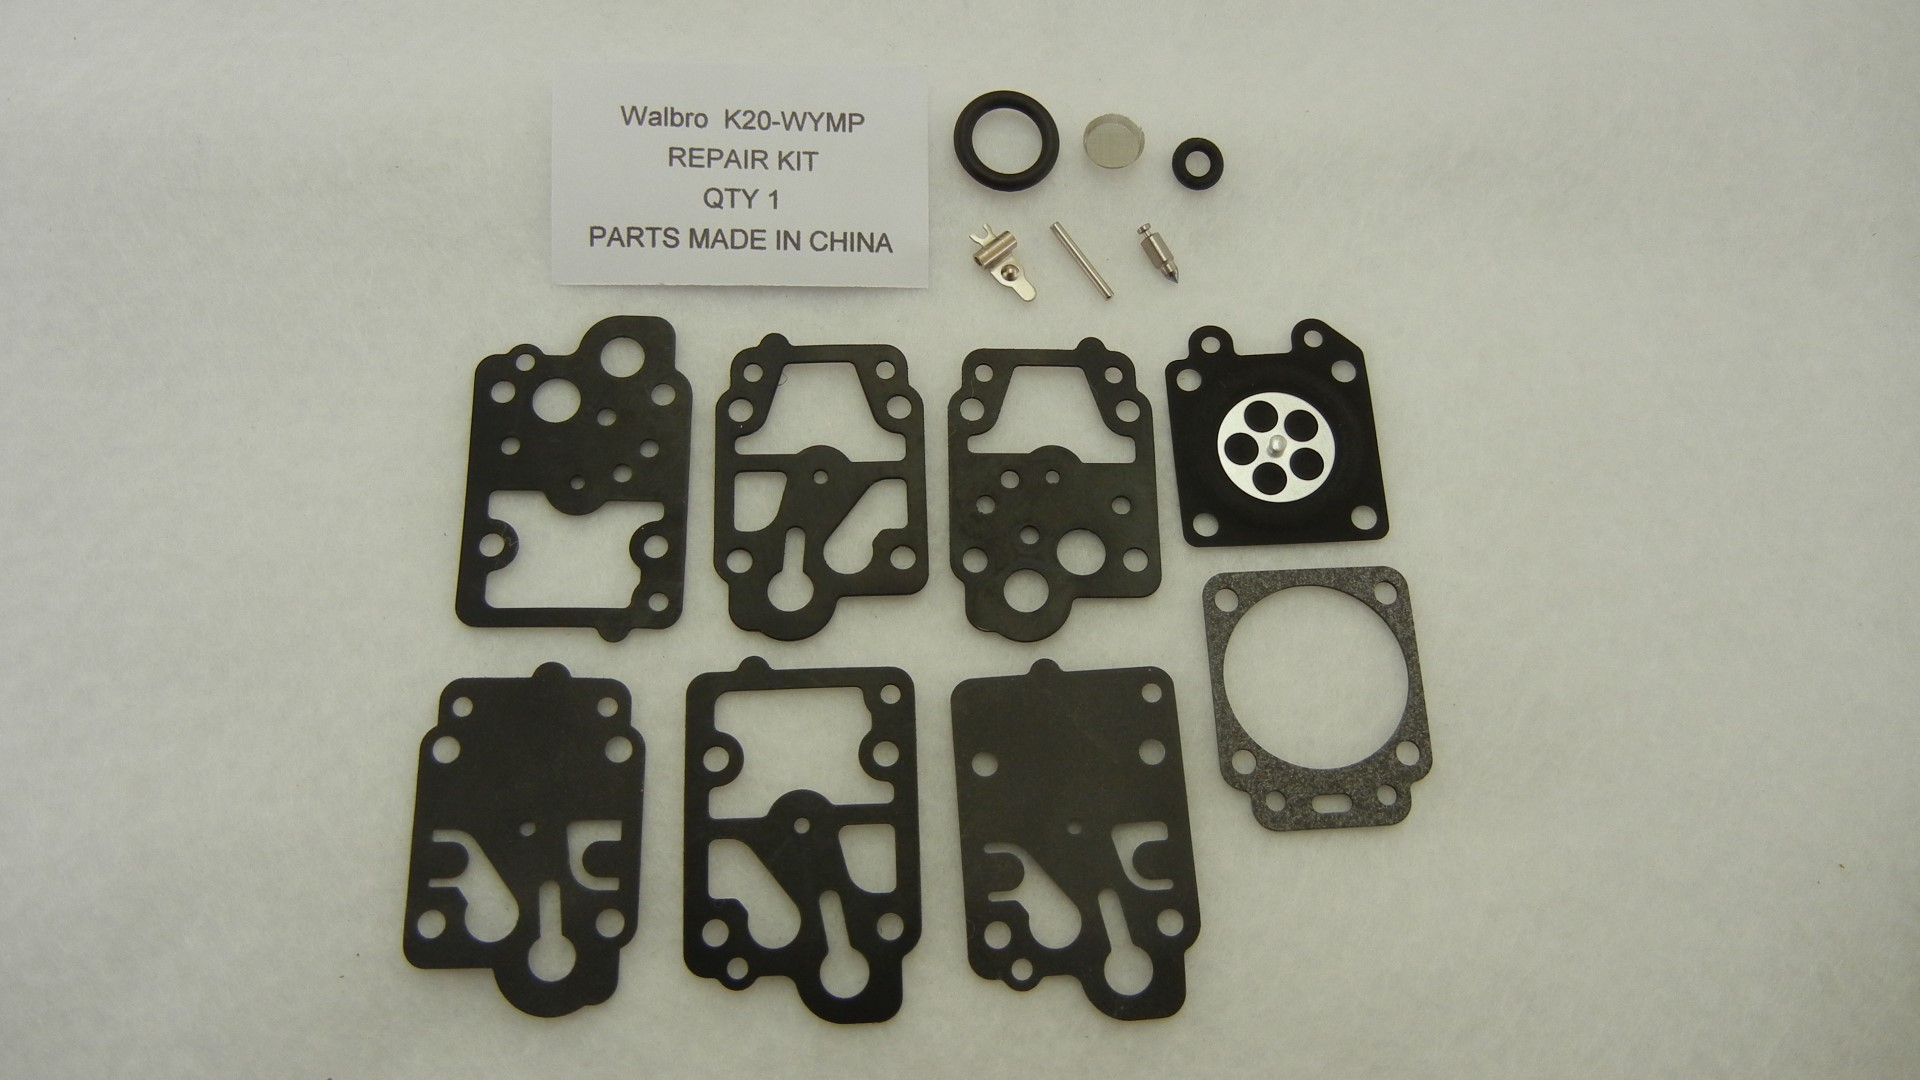 Replacement carburetor rebuild kit Walbro K20-WYMP